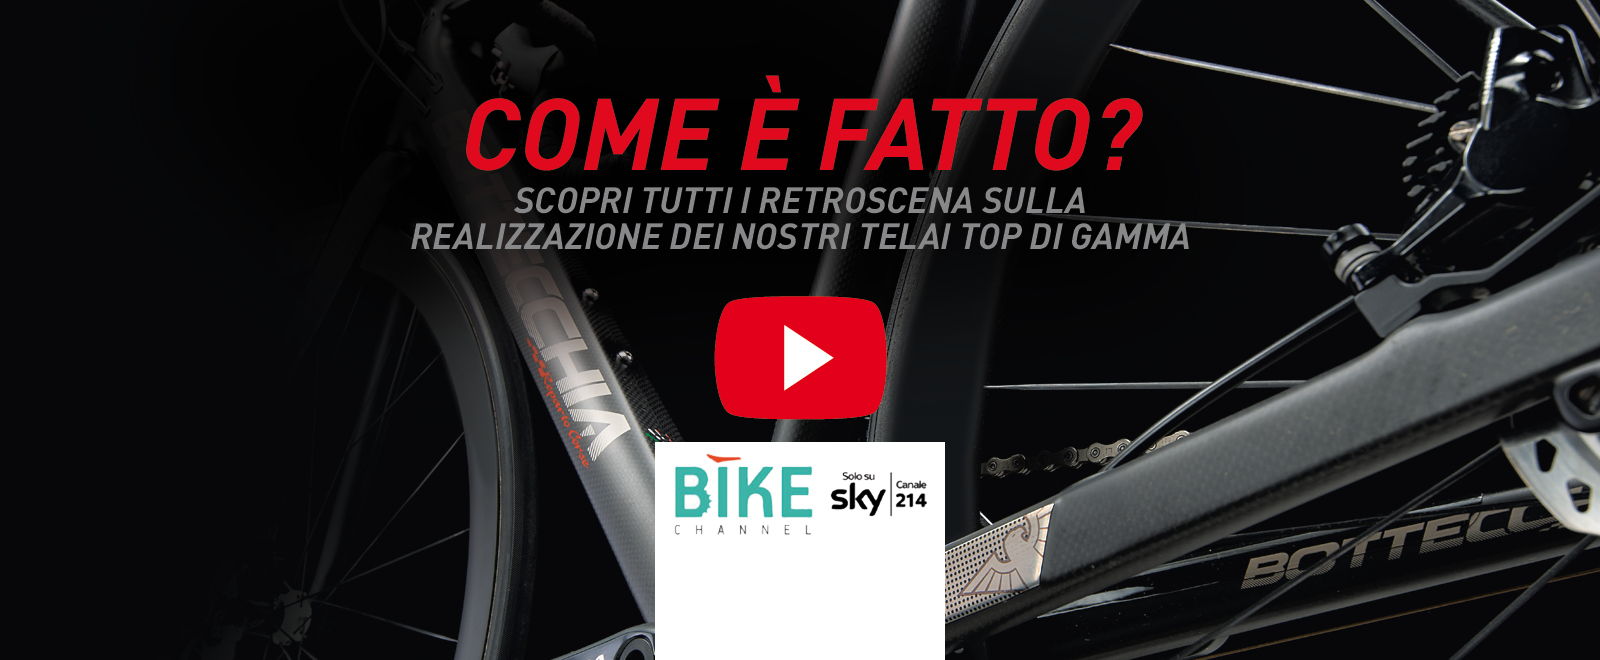 SLIDE_come_fatto_new